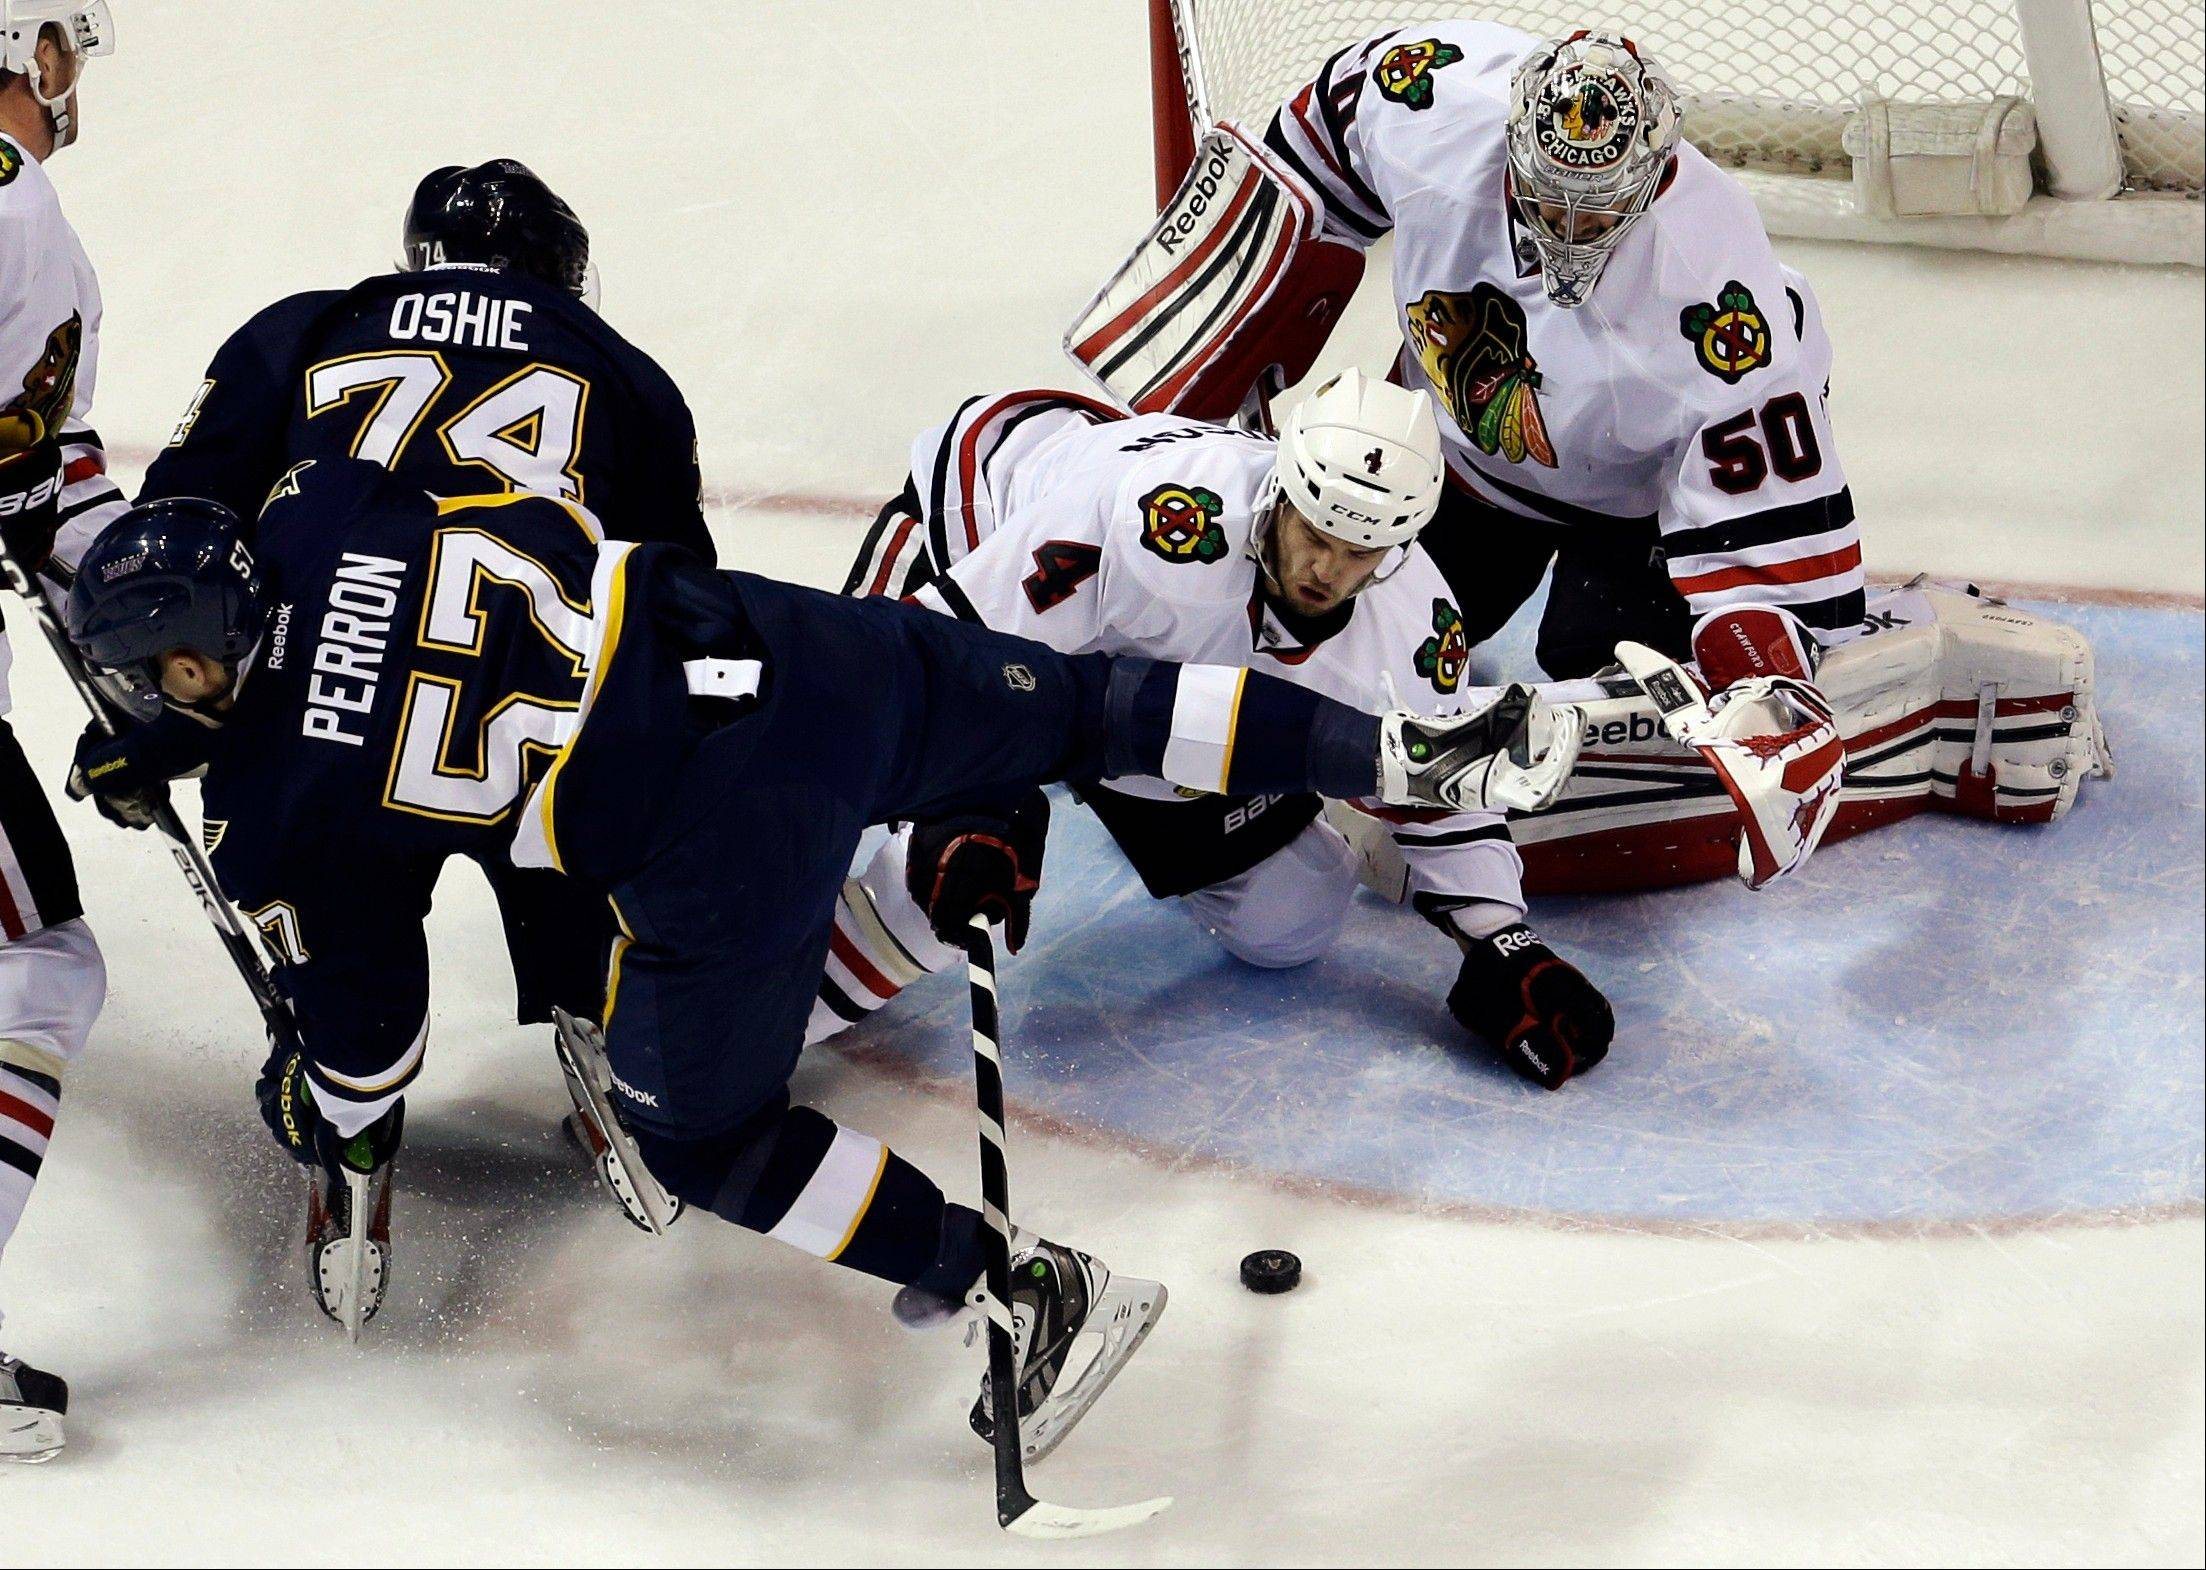 Chicago Blackhawks goalie Corey Crawford and Niklas Hjalmarsson try to smother a loose puck as St. Louis Blues� David Perron, front left, and T.J. Oshie get in on the play during the first period.